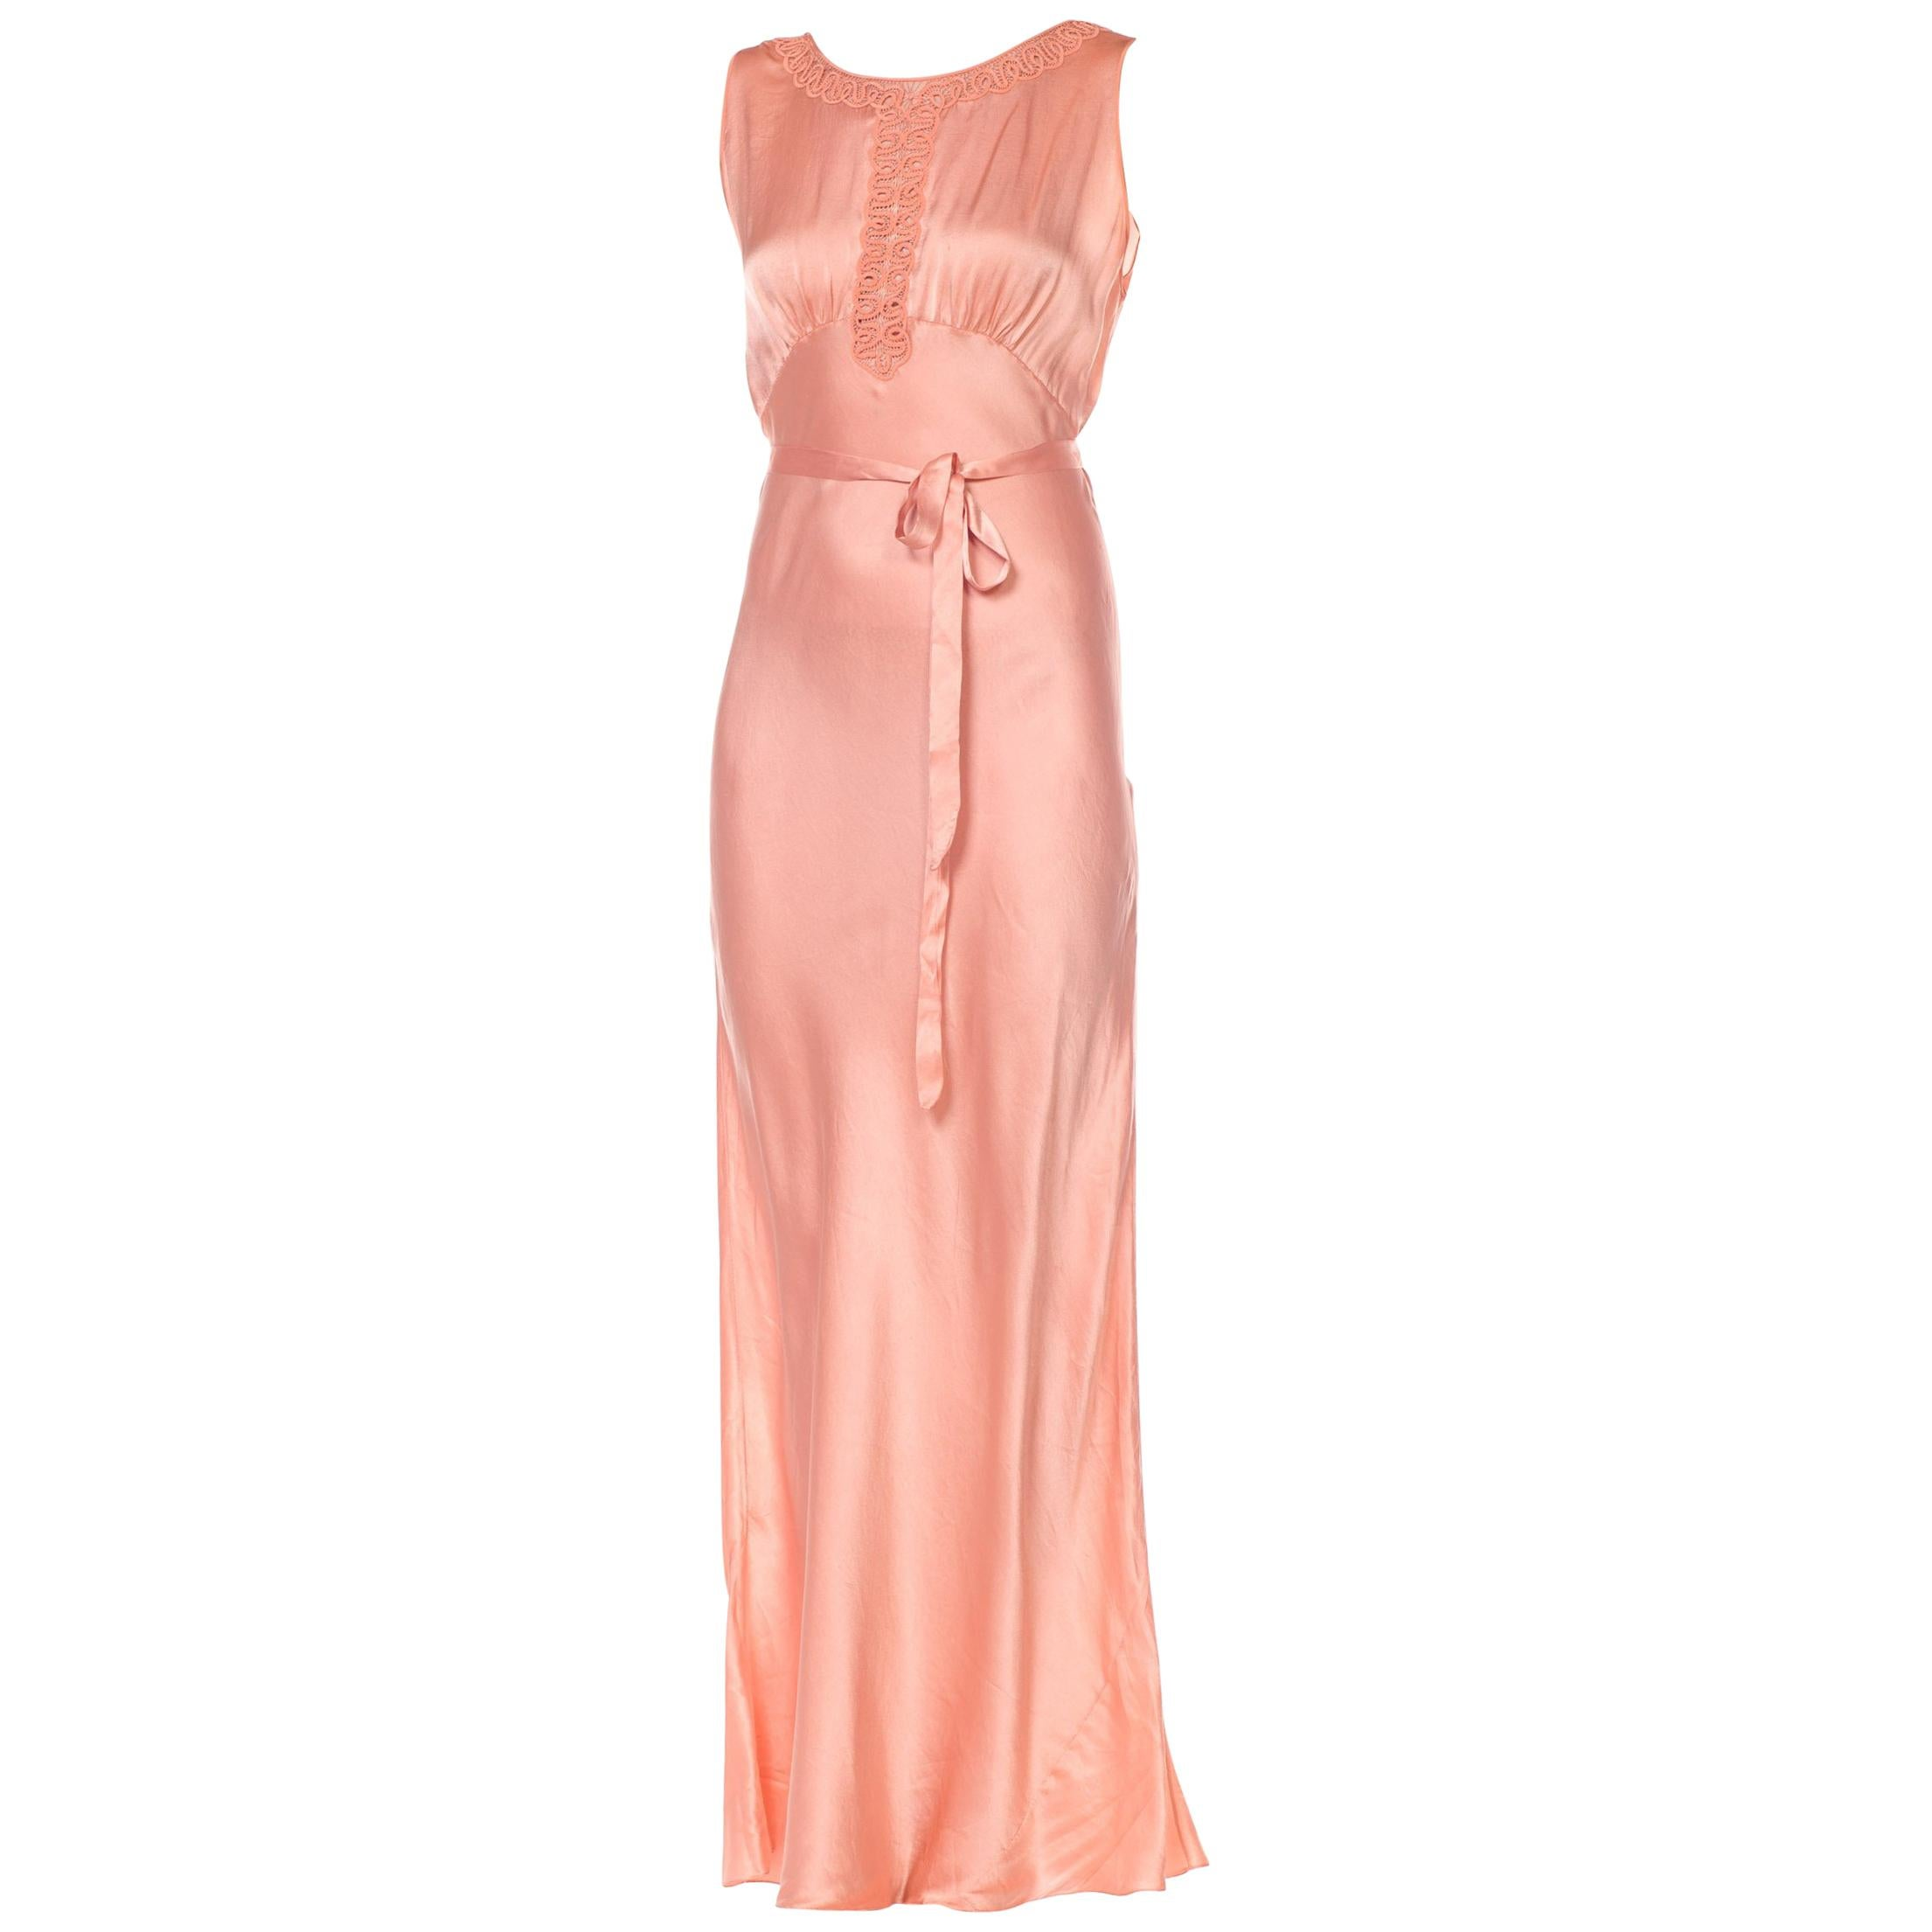 1930S Blush Pink Haute Couture Silk Charmeuse Bias Cut Negligee With Handmade L